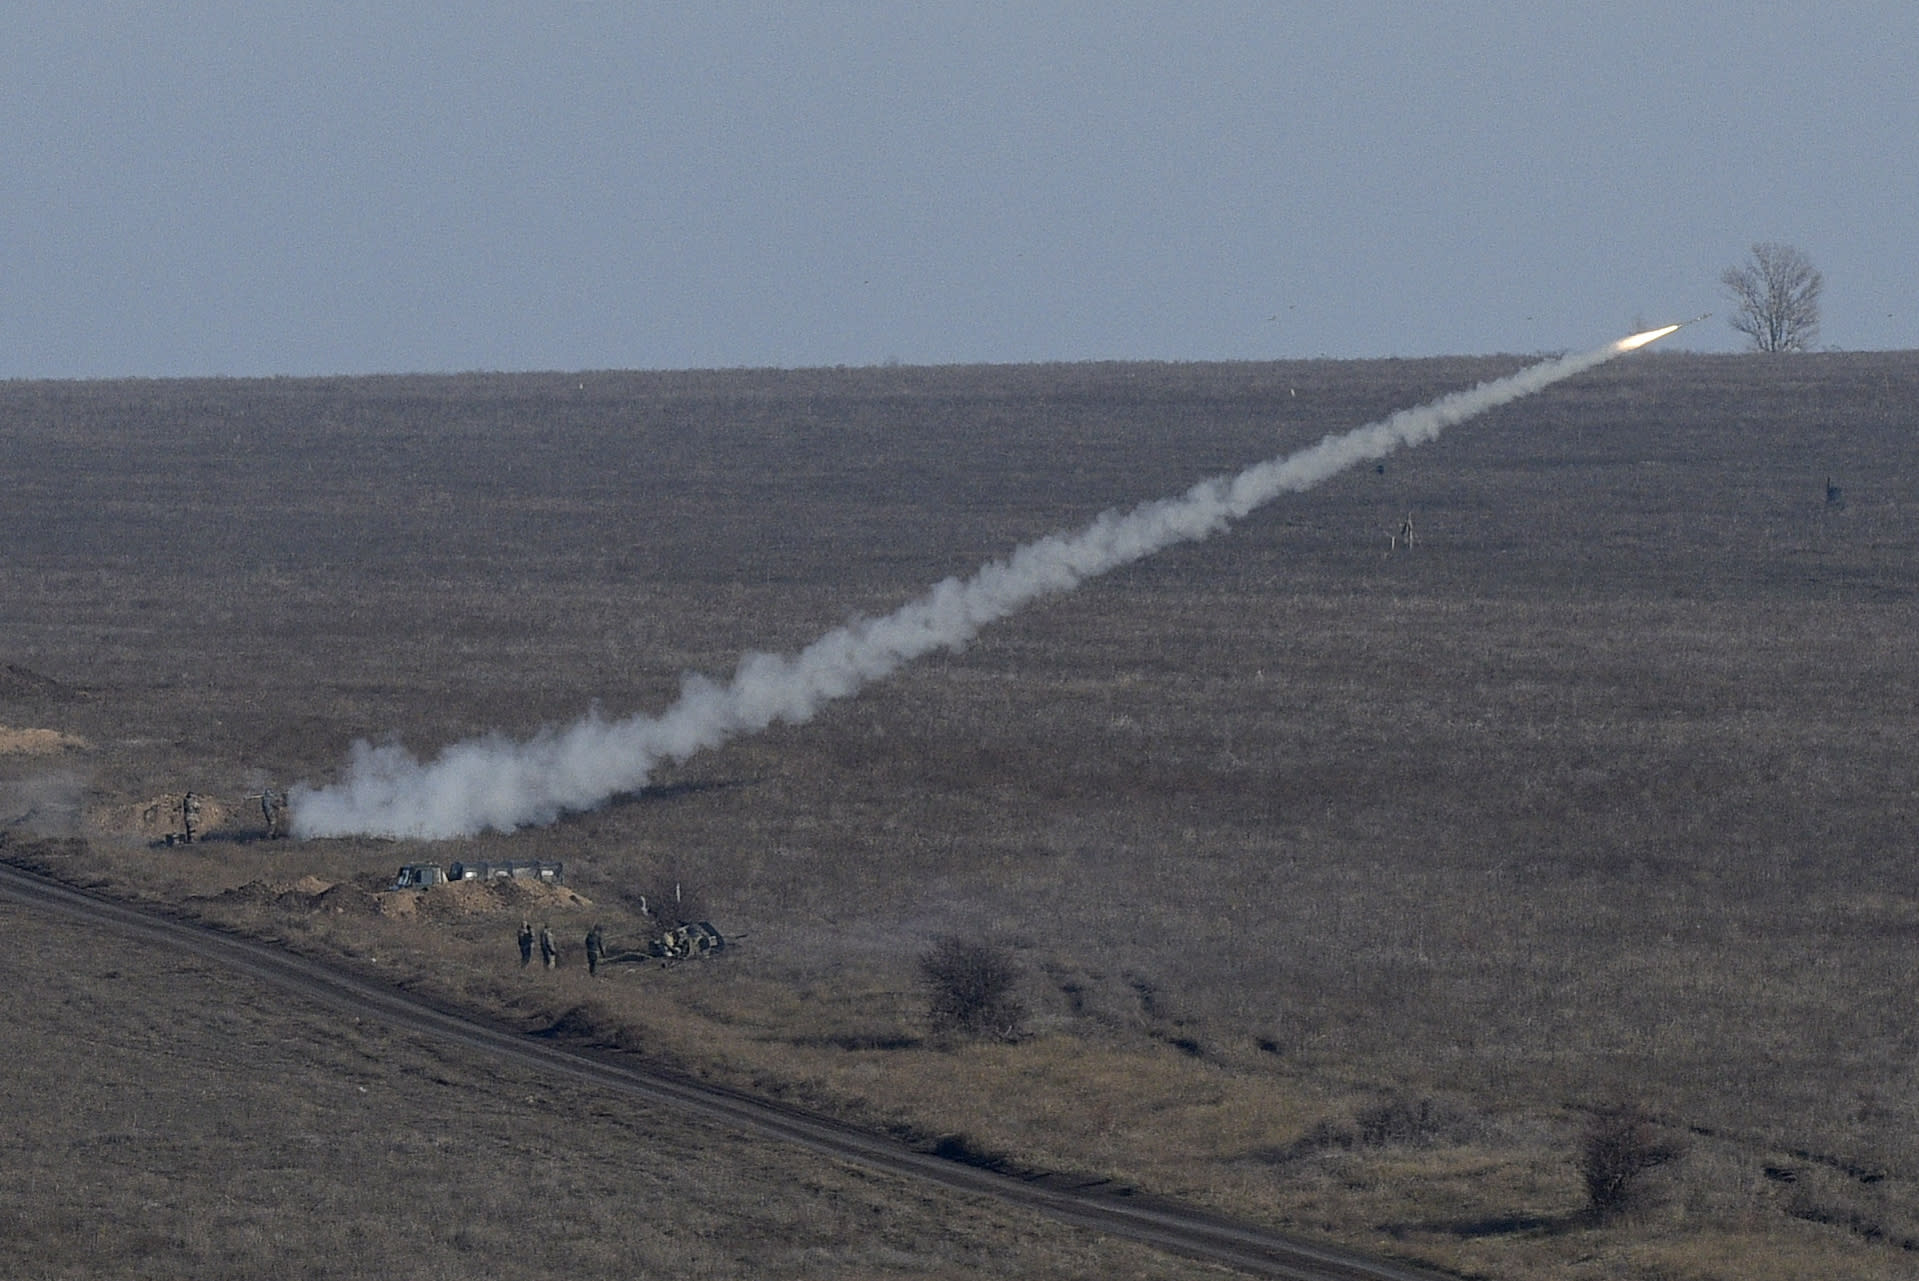 Ukrainian soldiers launch an anti-aircraft rocket during military exercises near Urzuf, south coast of Azov sea, eastern Ukraine, Thursday, Nov. 29, 2018. Ukraine put its military forces on high combat alert and announced martial law this week after Russian border guards fired on and seized three Ukrainian ships in the Black Sea. (AP Photo/Evgeniy Maloletka)